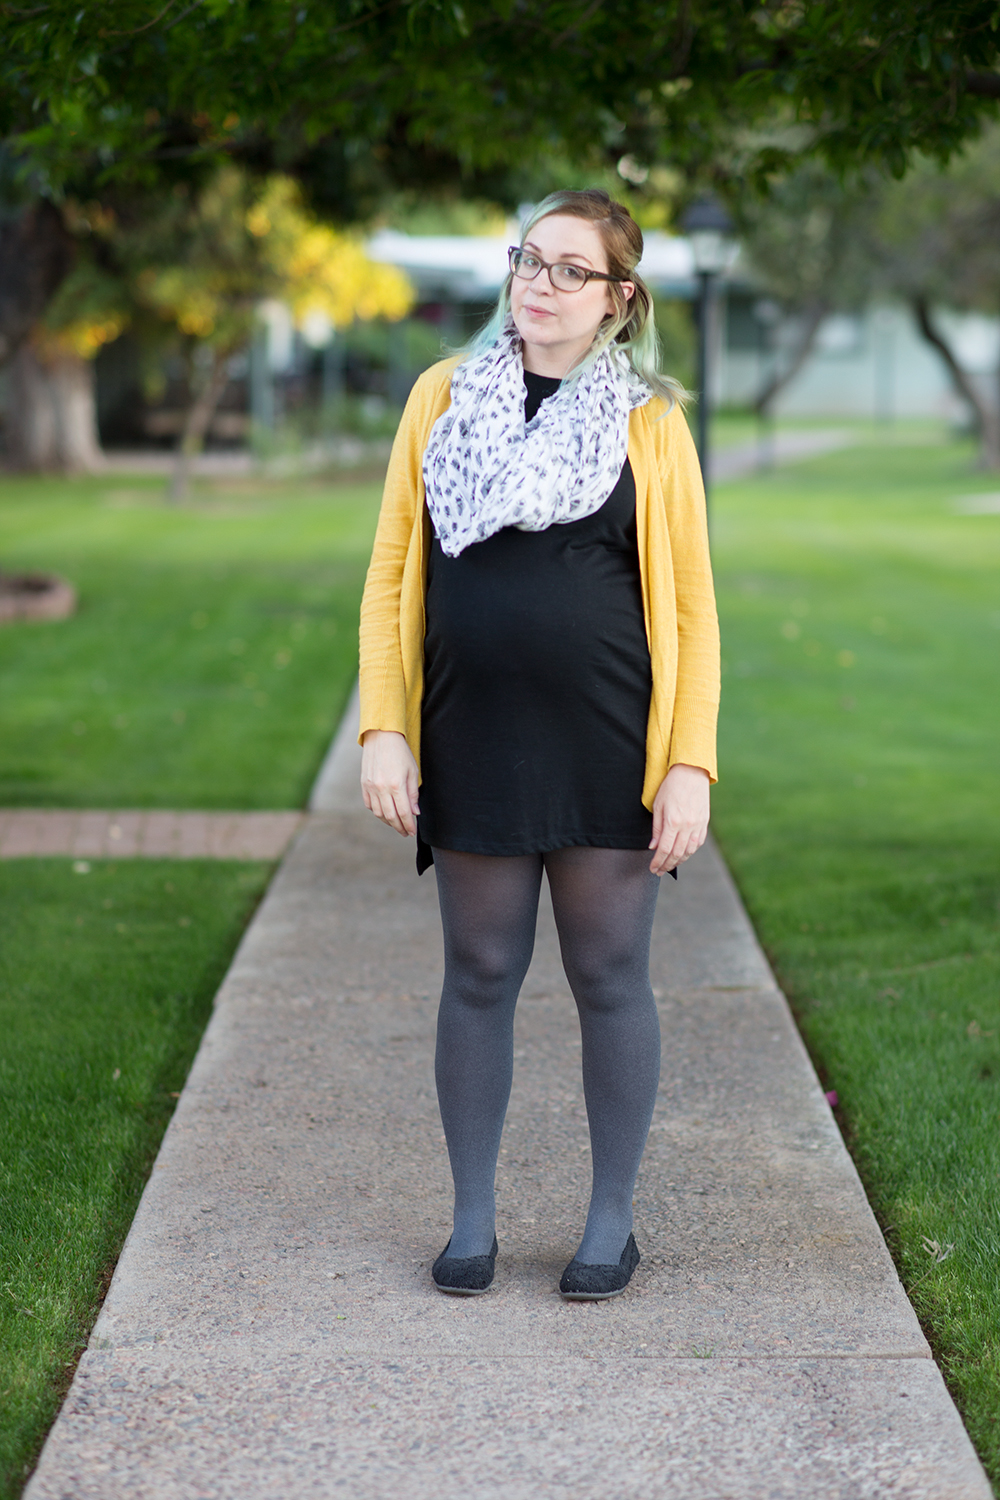 Black and Yellow Maternity Wear - littleladylittlecity.com